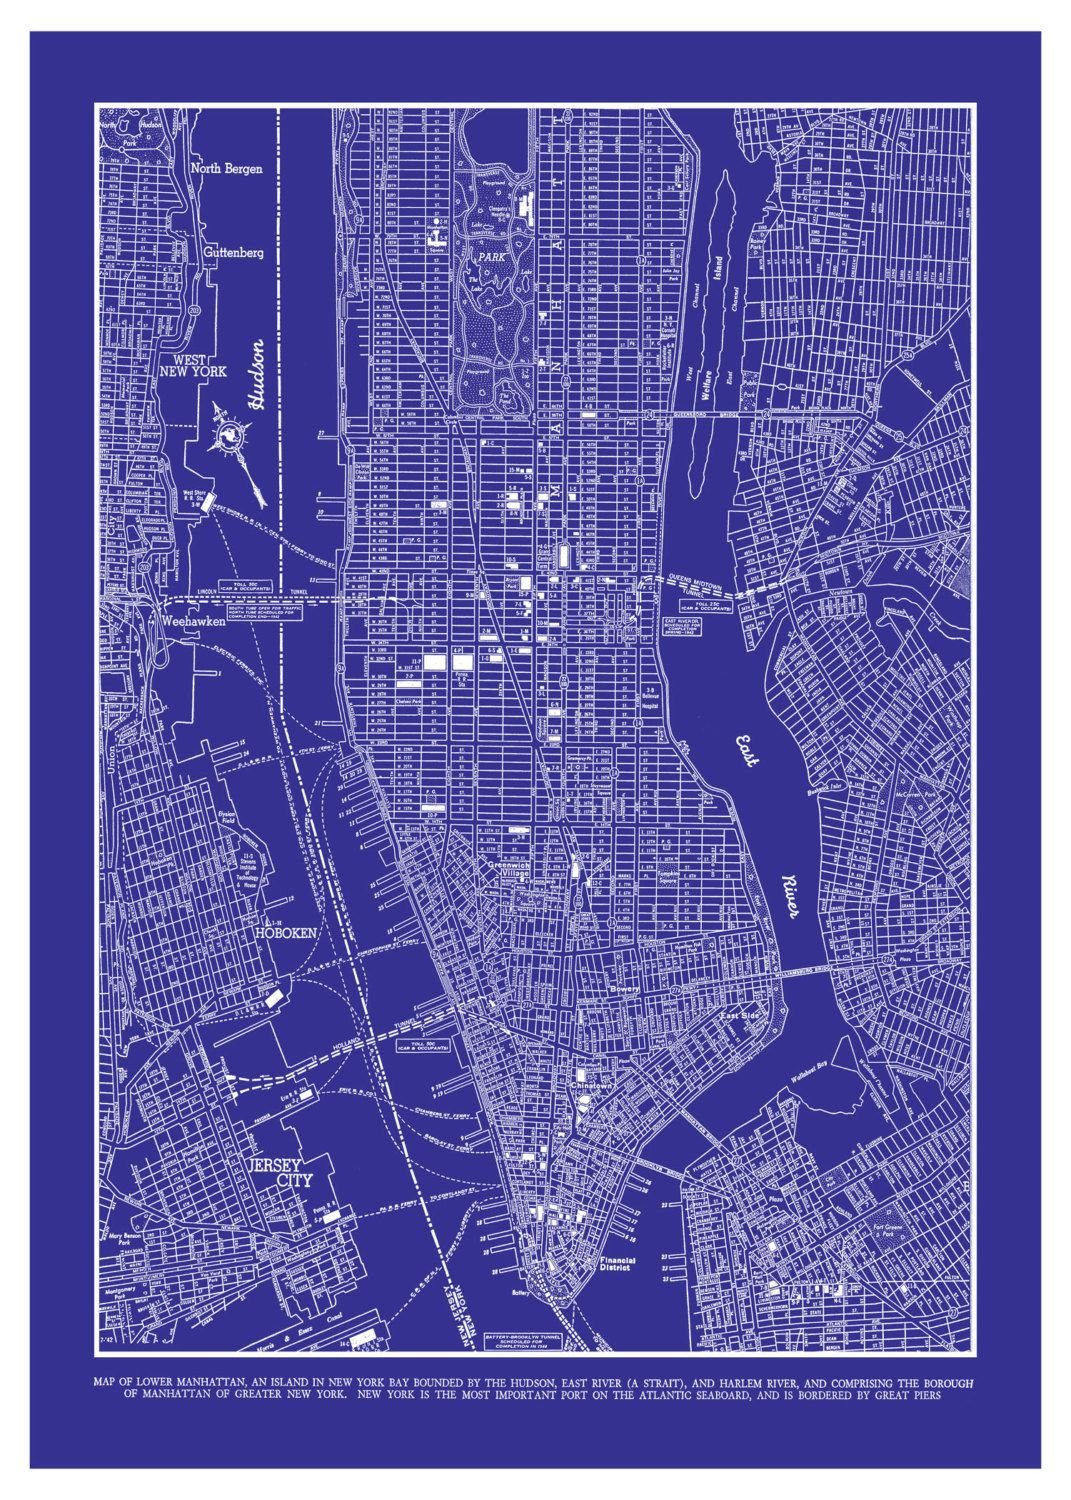 New york city map 1944 new york city manhattan street map vintage 1944 new york city manhattan street map vintage blueprint 20x30 print poster 2995 via etsy malvernweather Image collections